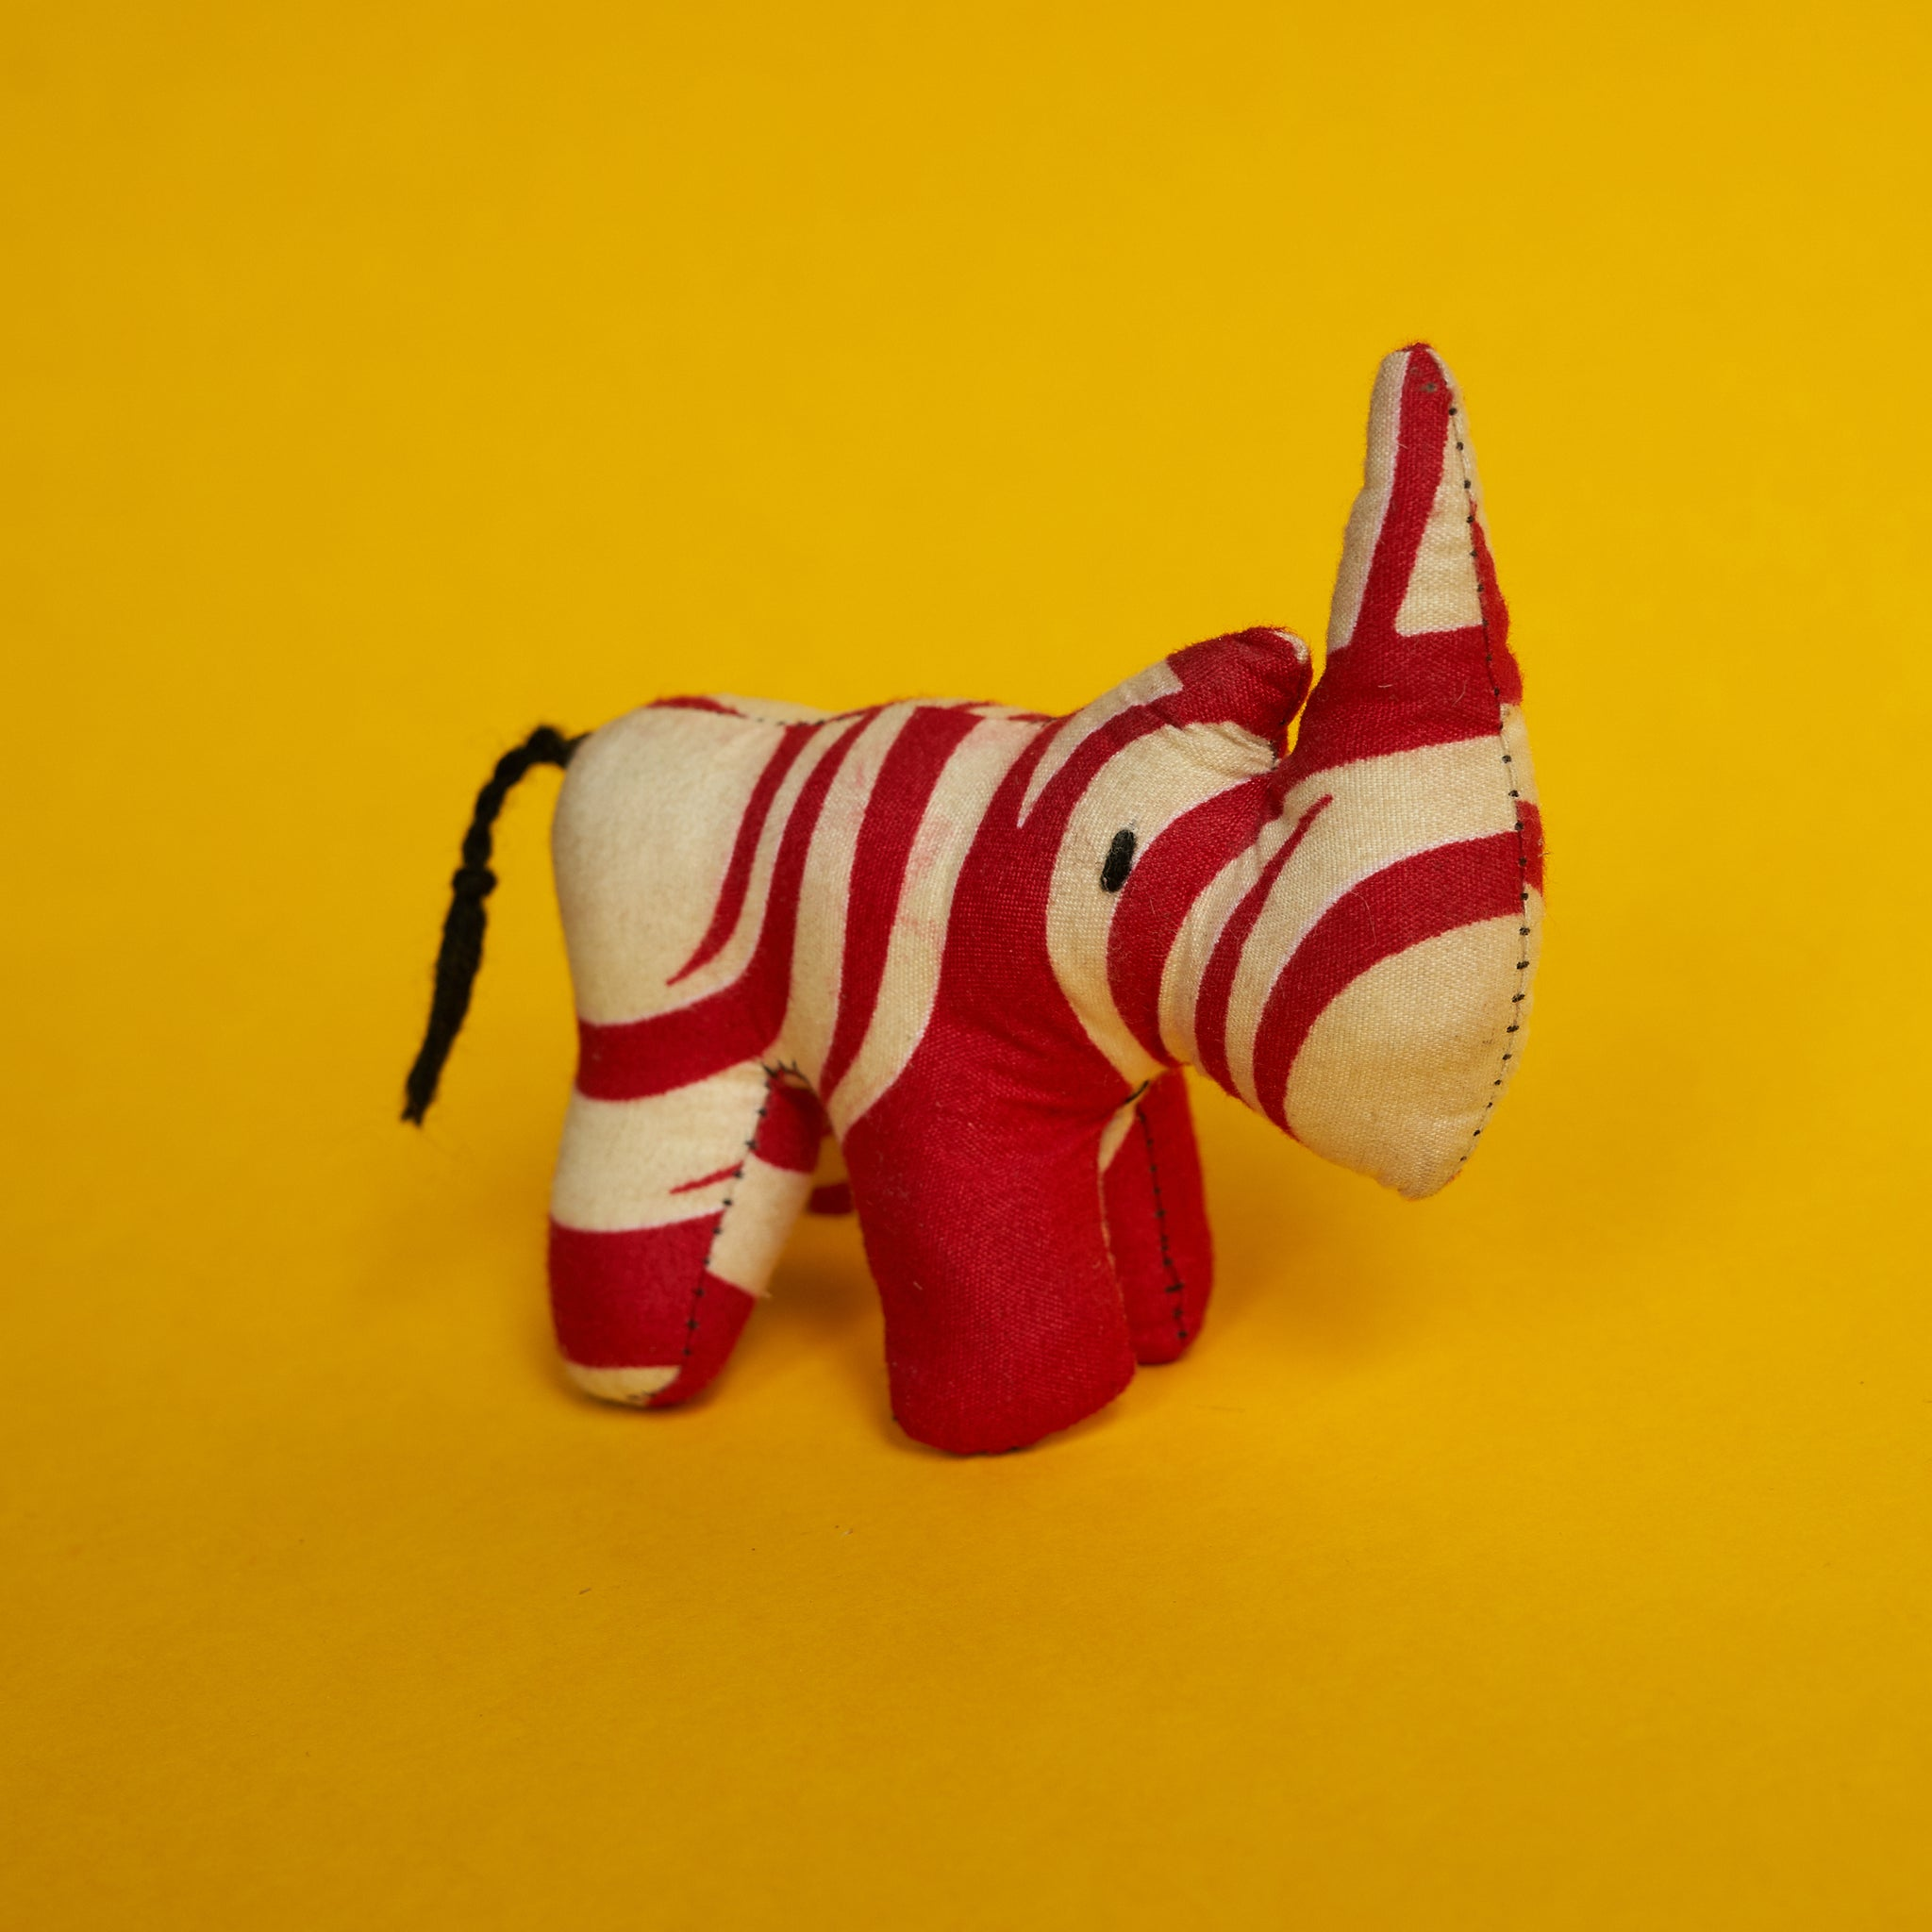 Handmade Cloth Toy - Red and White Rhino - A BAG FULL OF KIM - Kim Sion